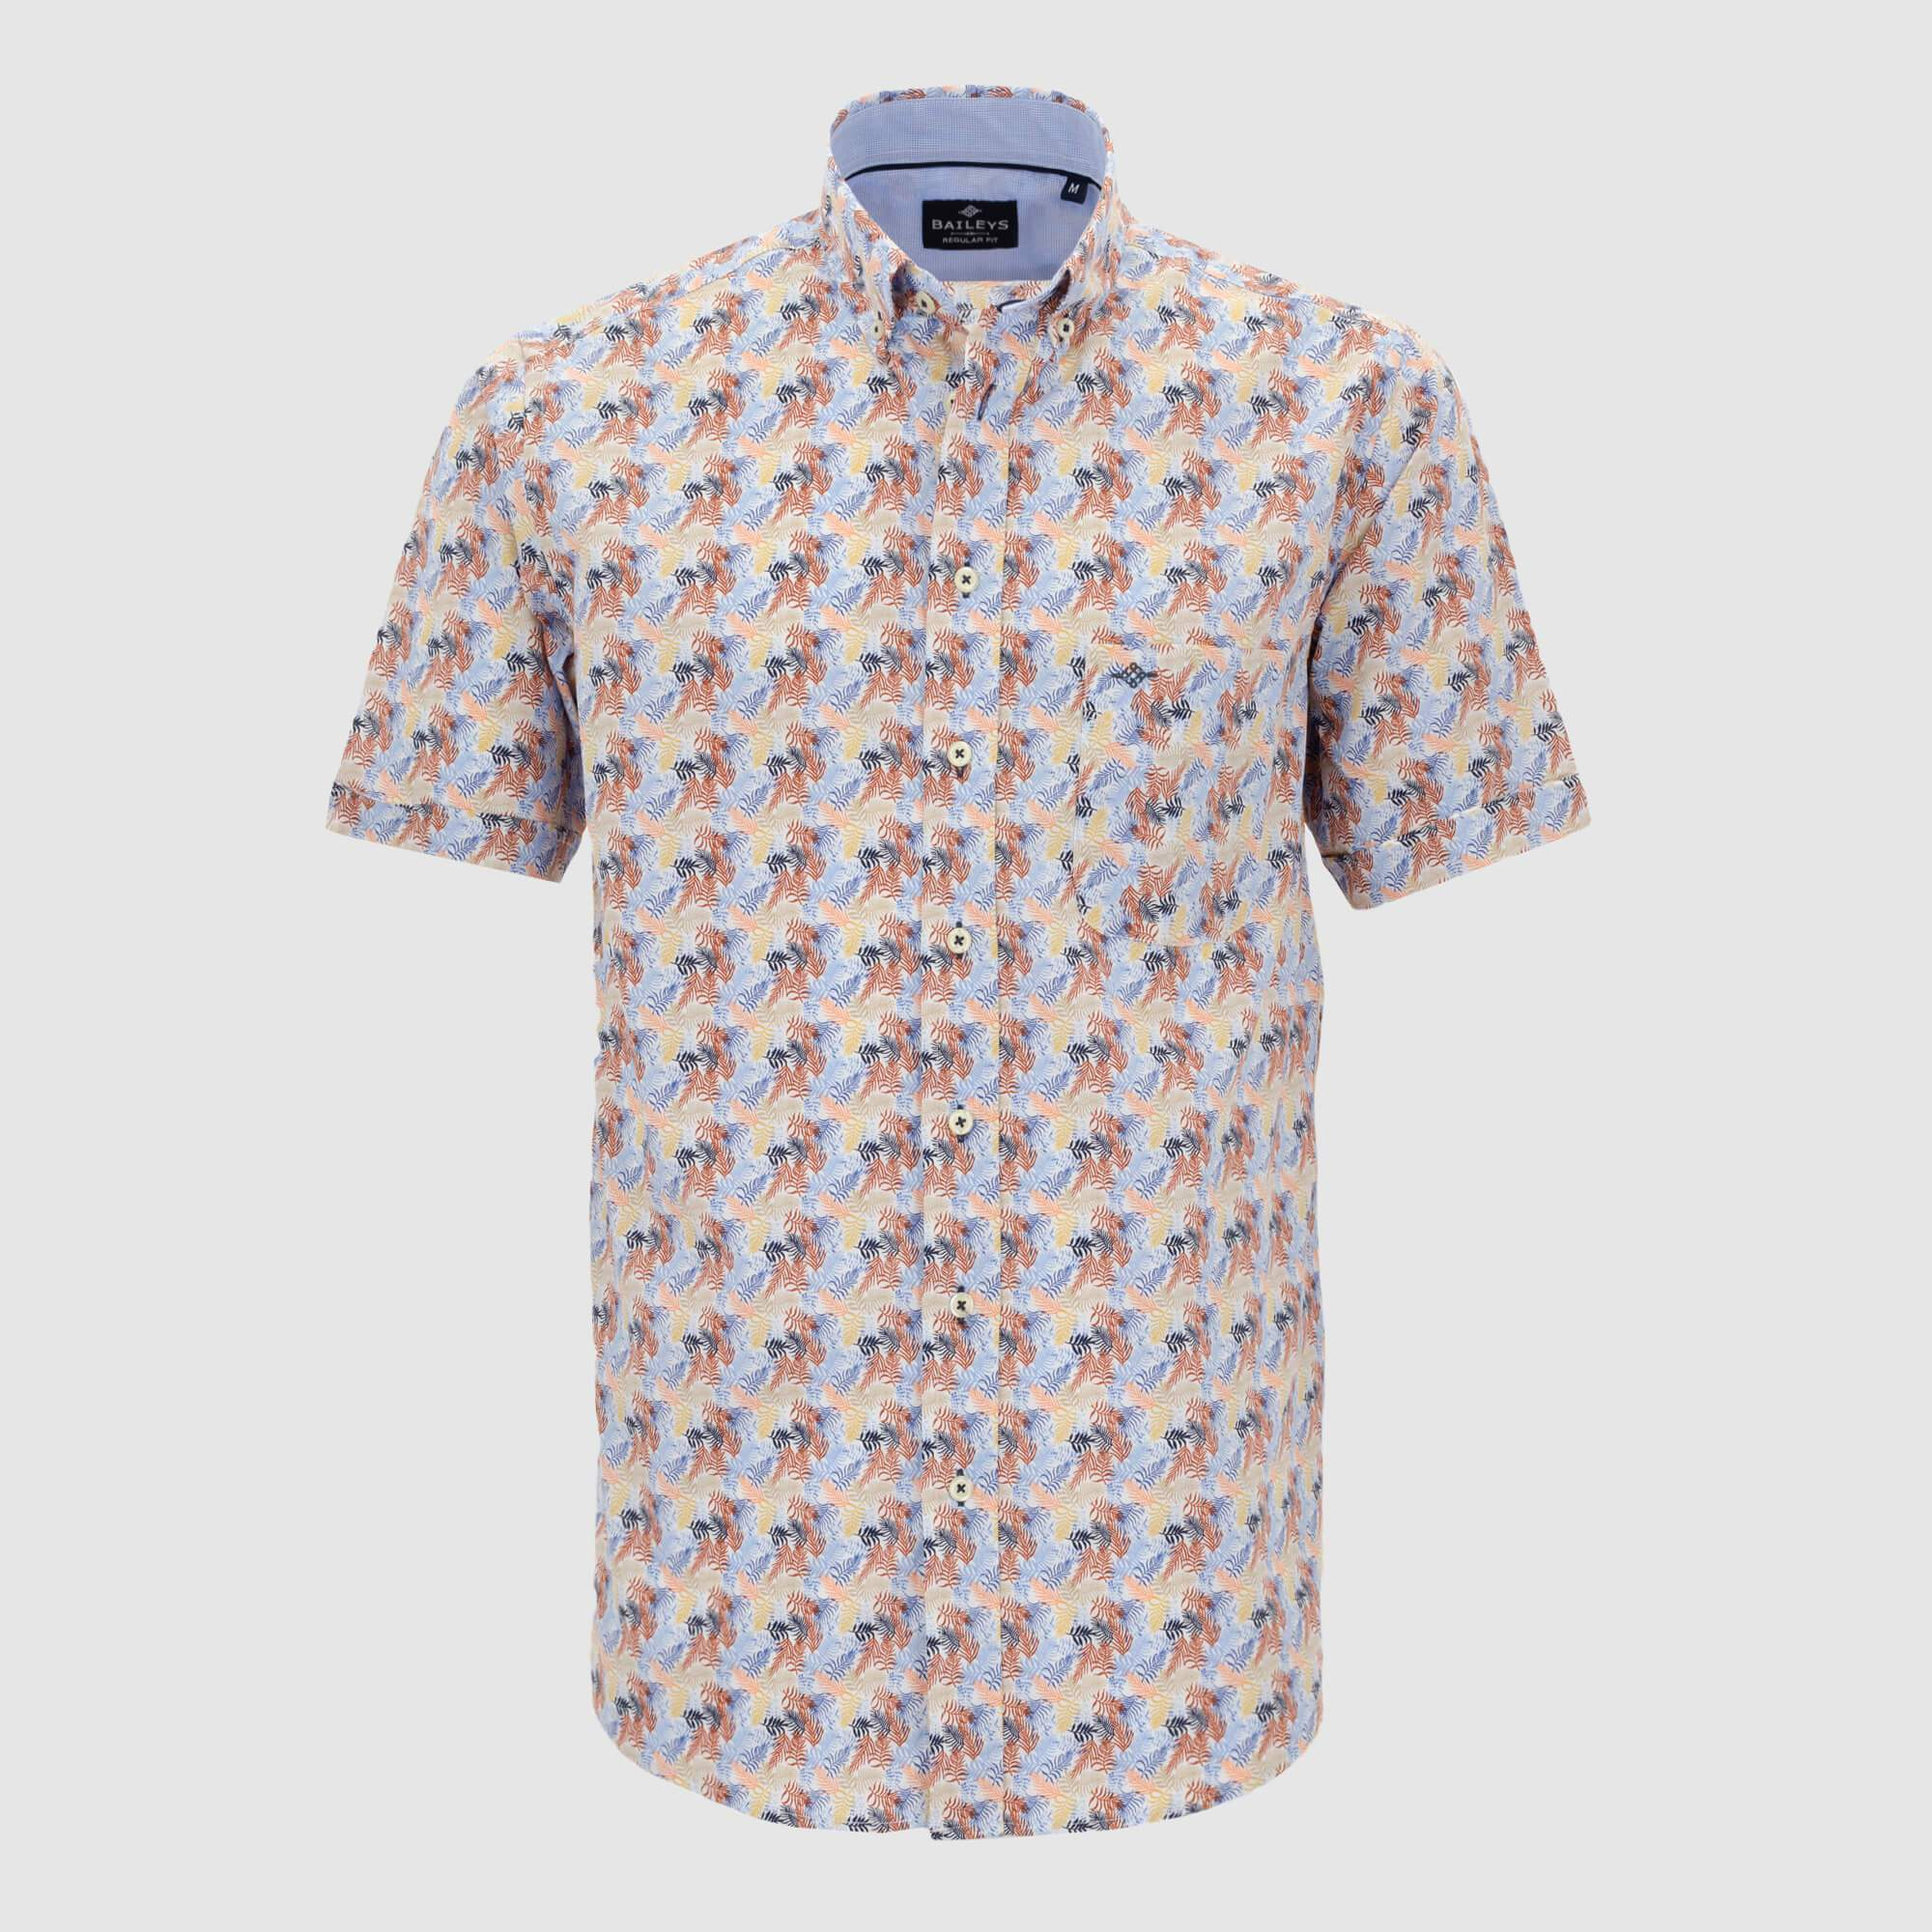 Camisa estampada manga corta regular fit 106684